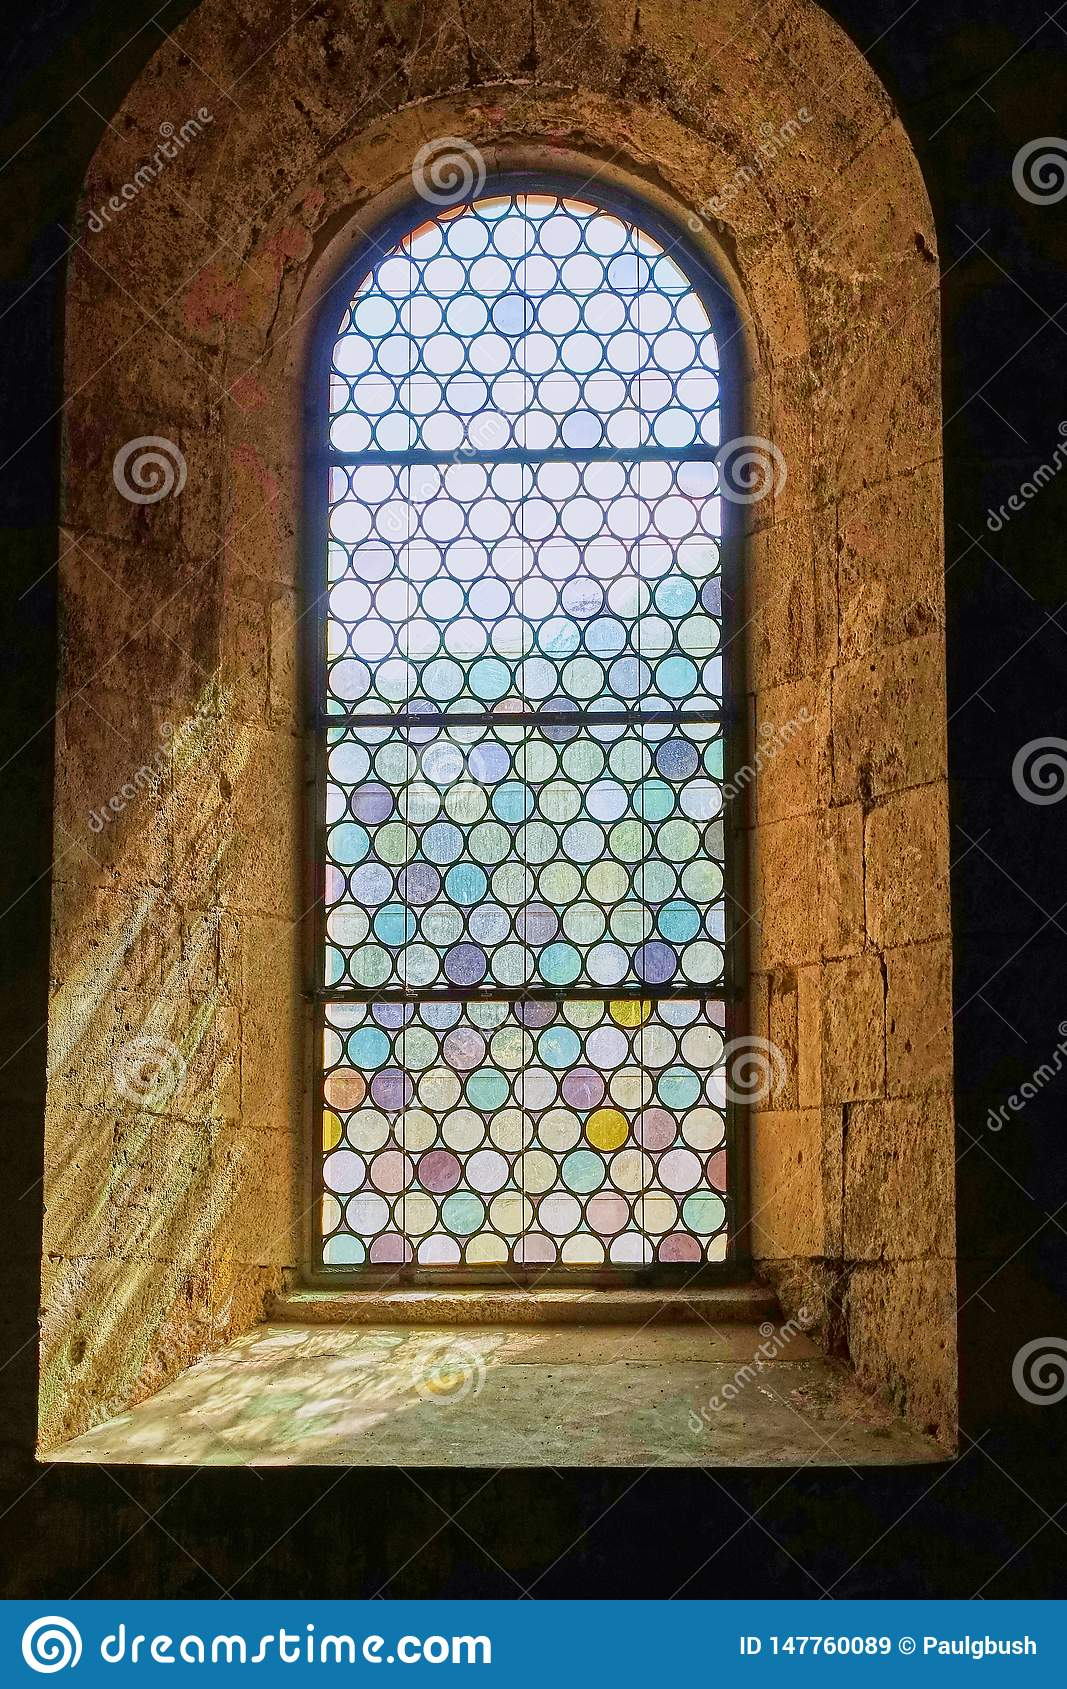 Pretty leaded stained glass window set in thick stone walls